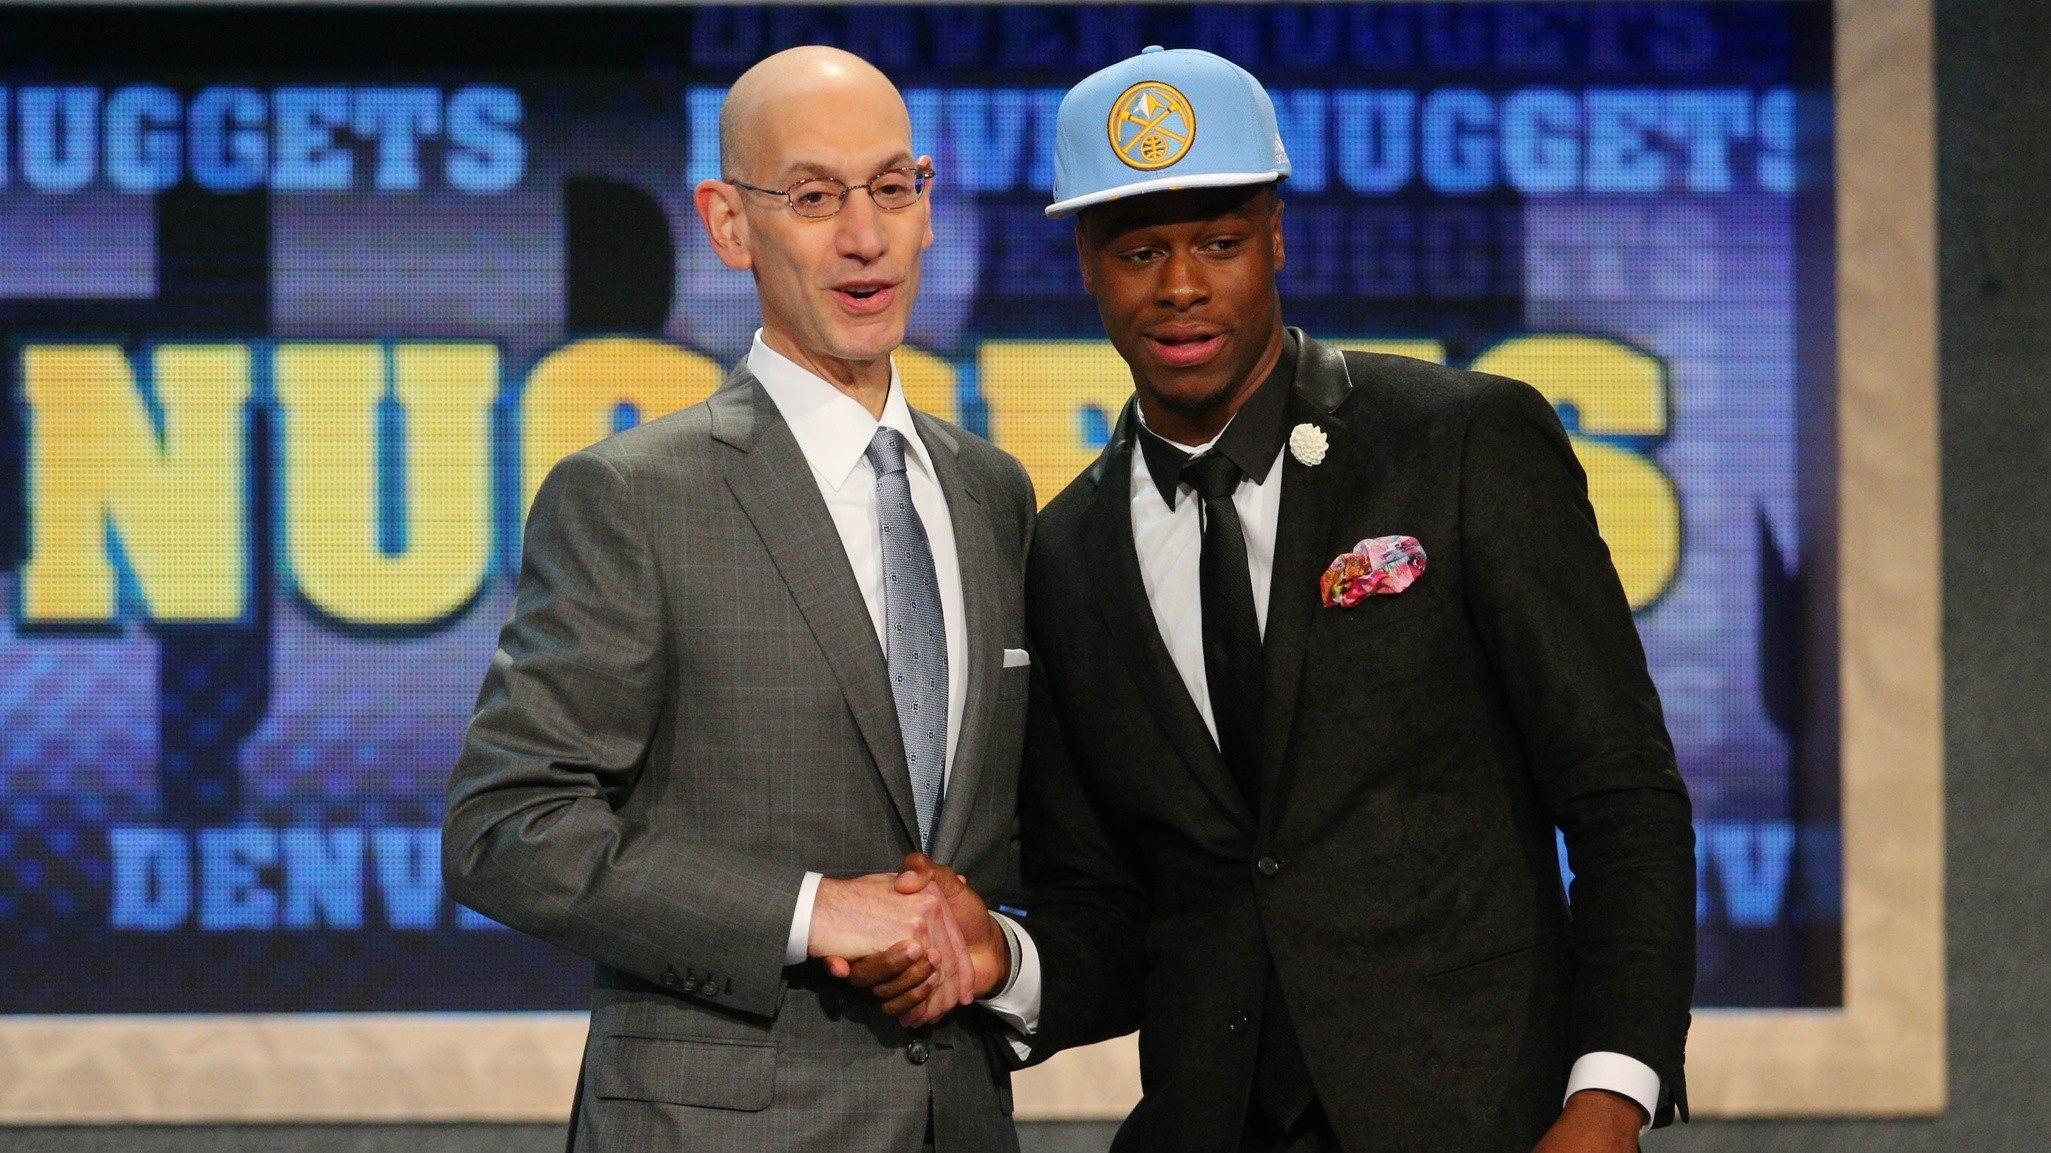 Scouting Reports On Emmanuel Mudiay From A Professional NBA Scout And A Surly Teen